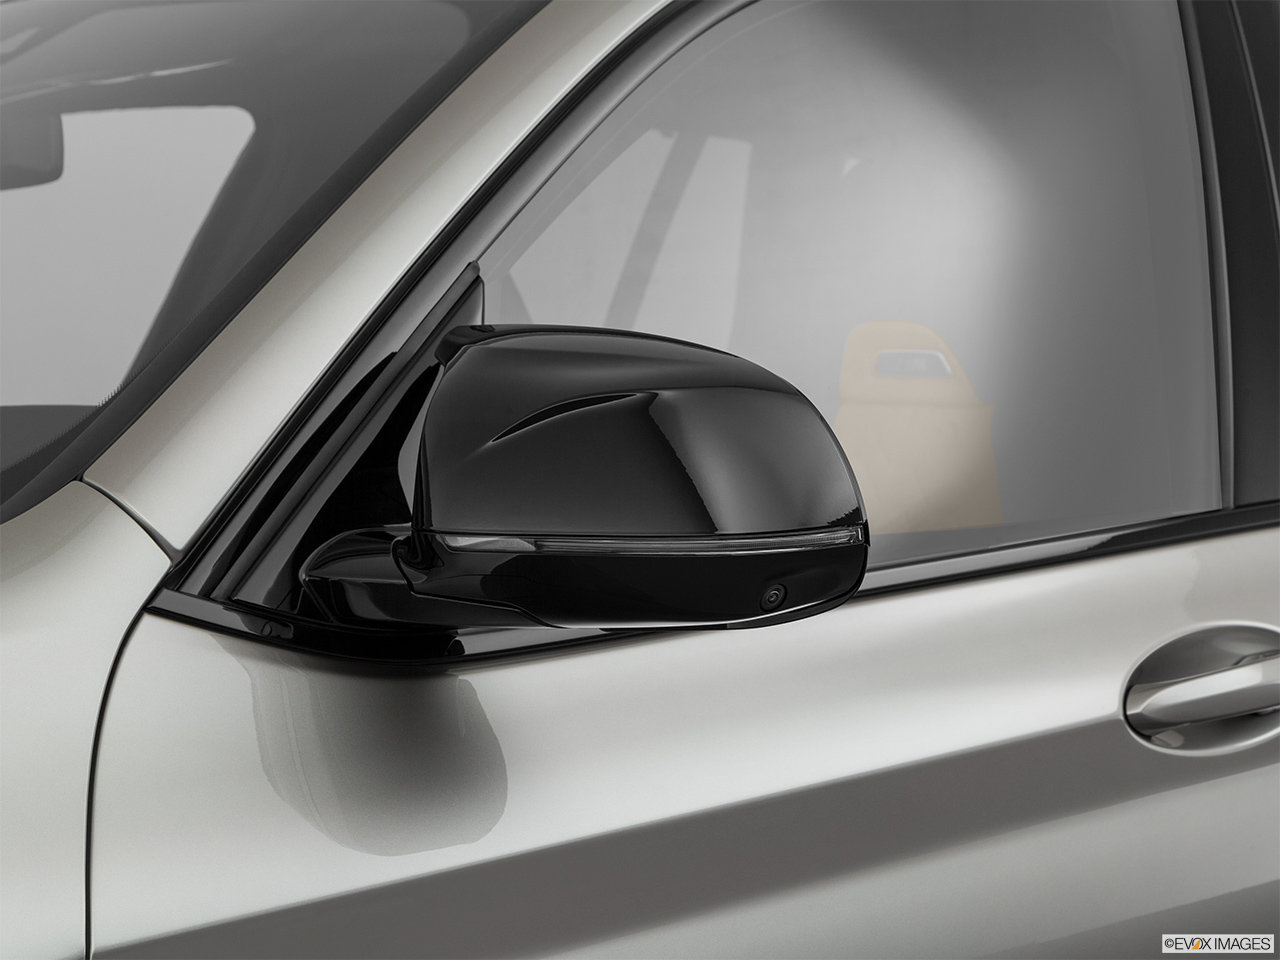 2020 BMW X3 M Competition Driver's side mirror, 3_4 rear